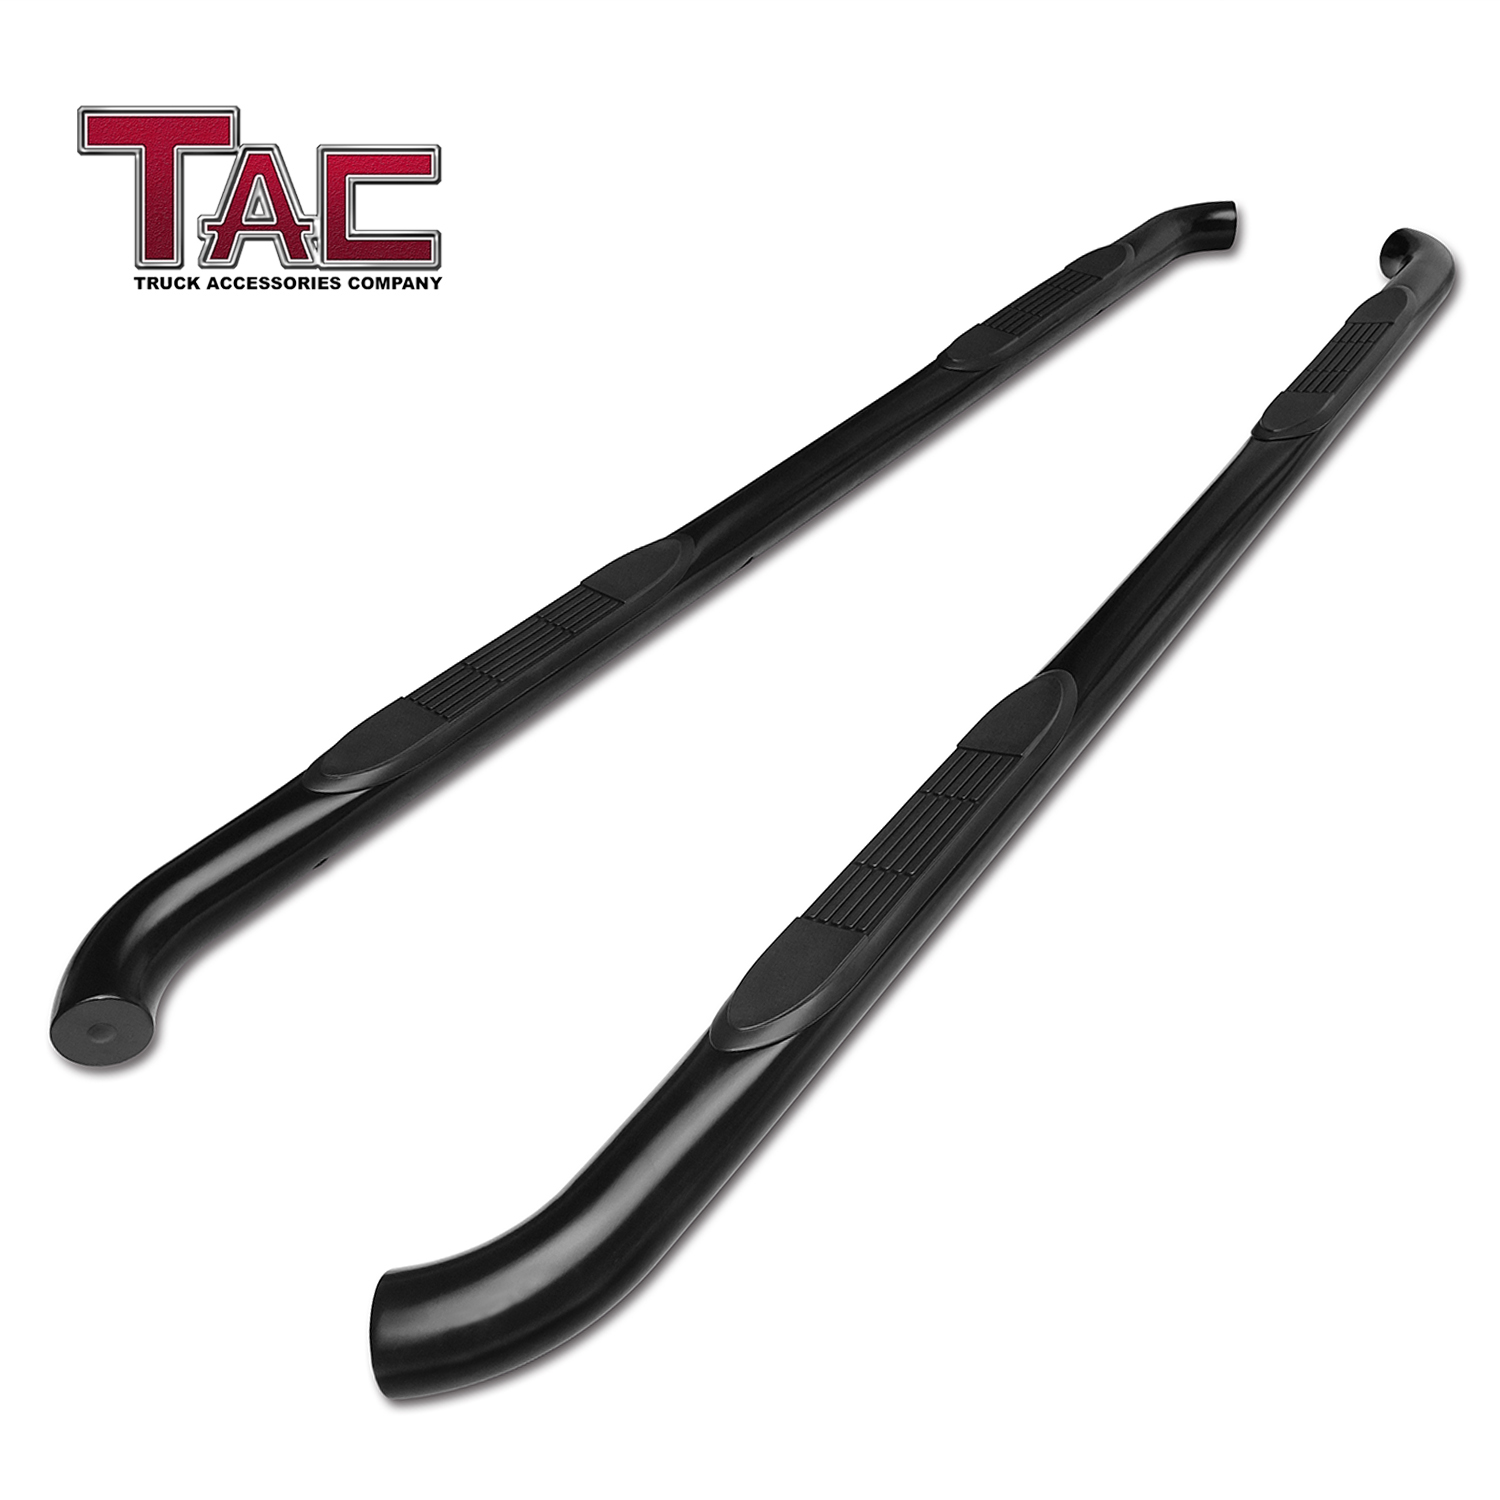 """TAC Side Step for 2005-2019 Nissan Frontier Crew Cab / 2005-2012 Suzuki Equator Crew Cab Truck Pickup 3"""" Black Nerf Bars Running Boards"""